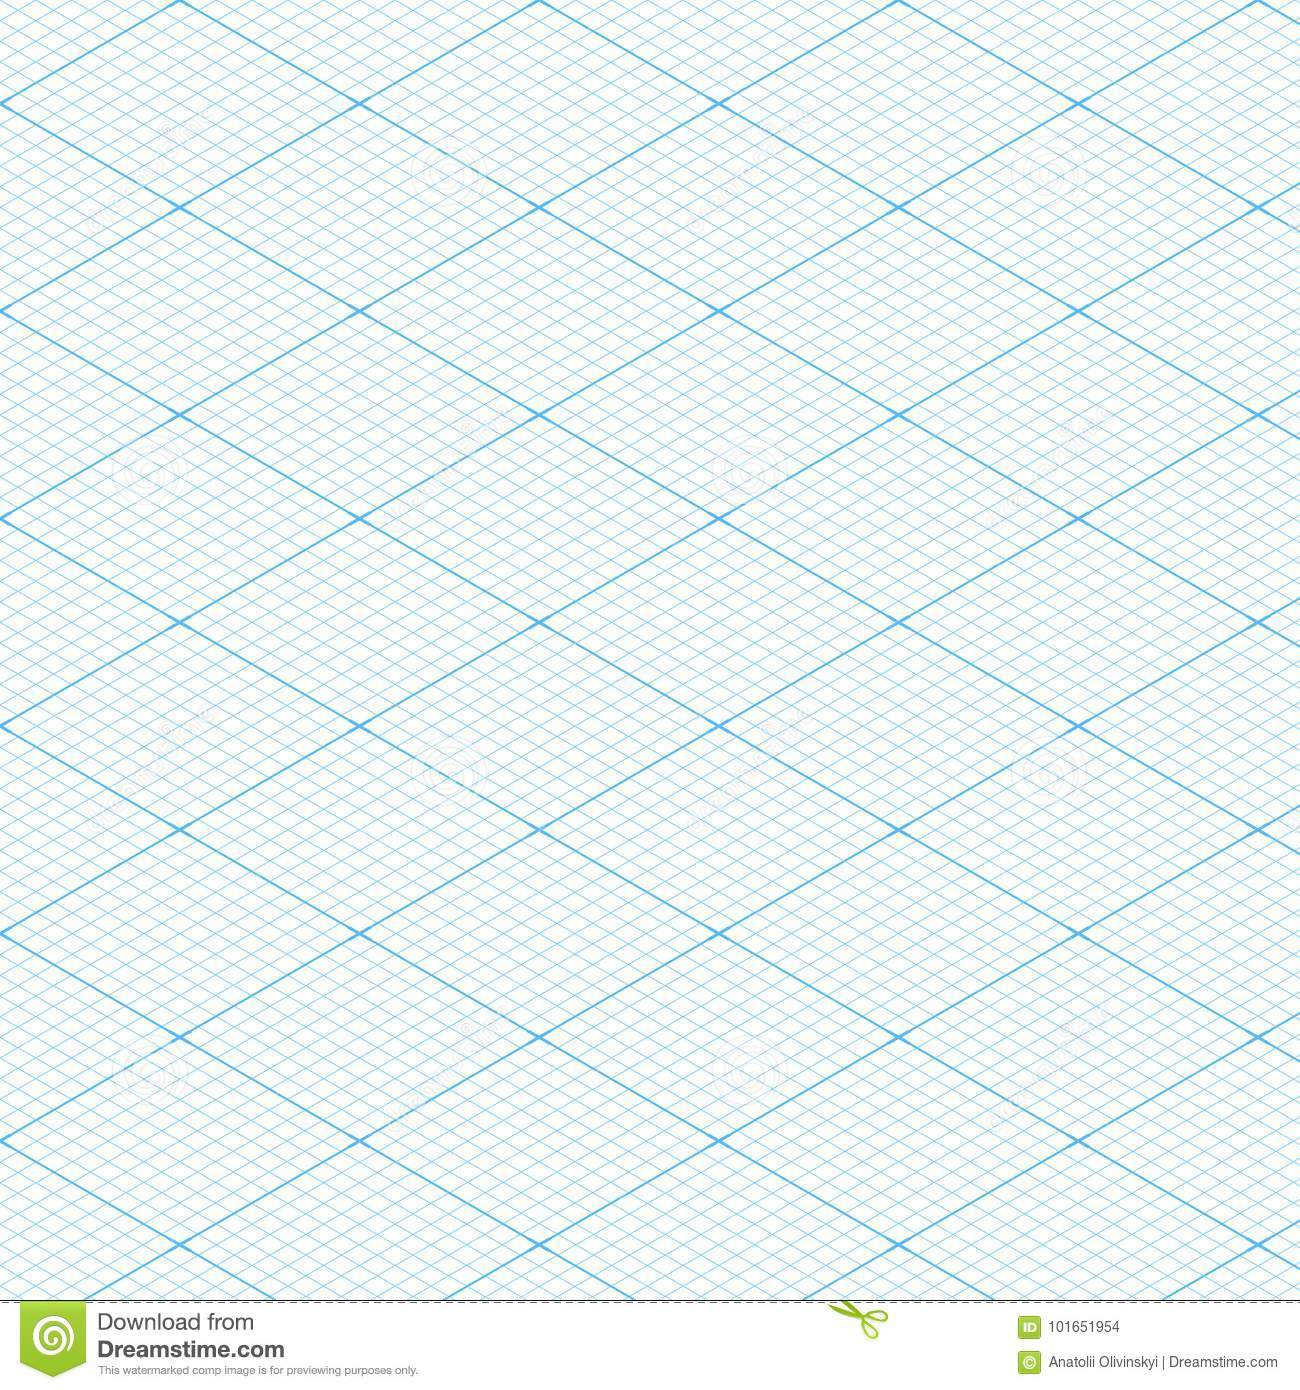 White isometric blueprint grid seamless pattern texture background download comp malvernweather Gallery